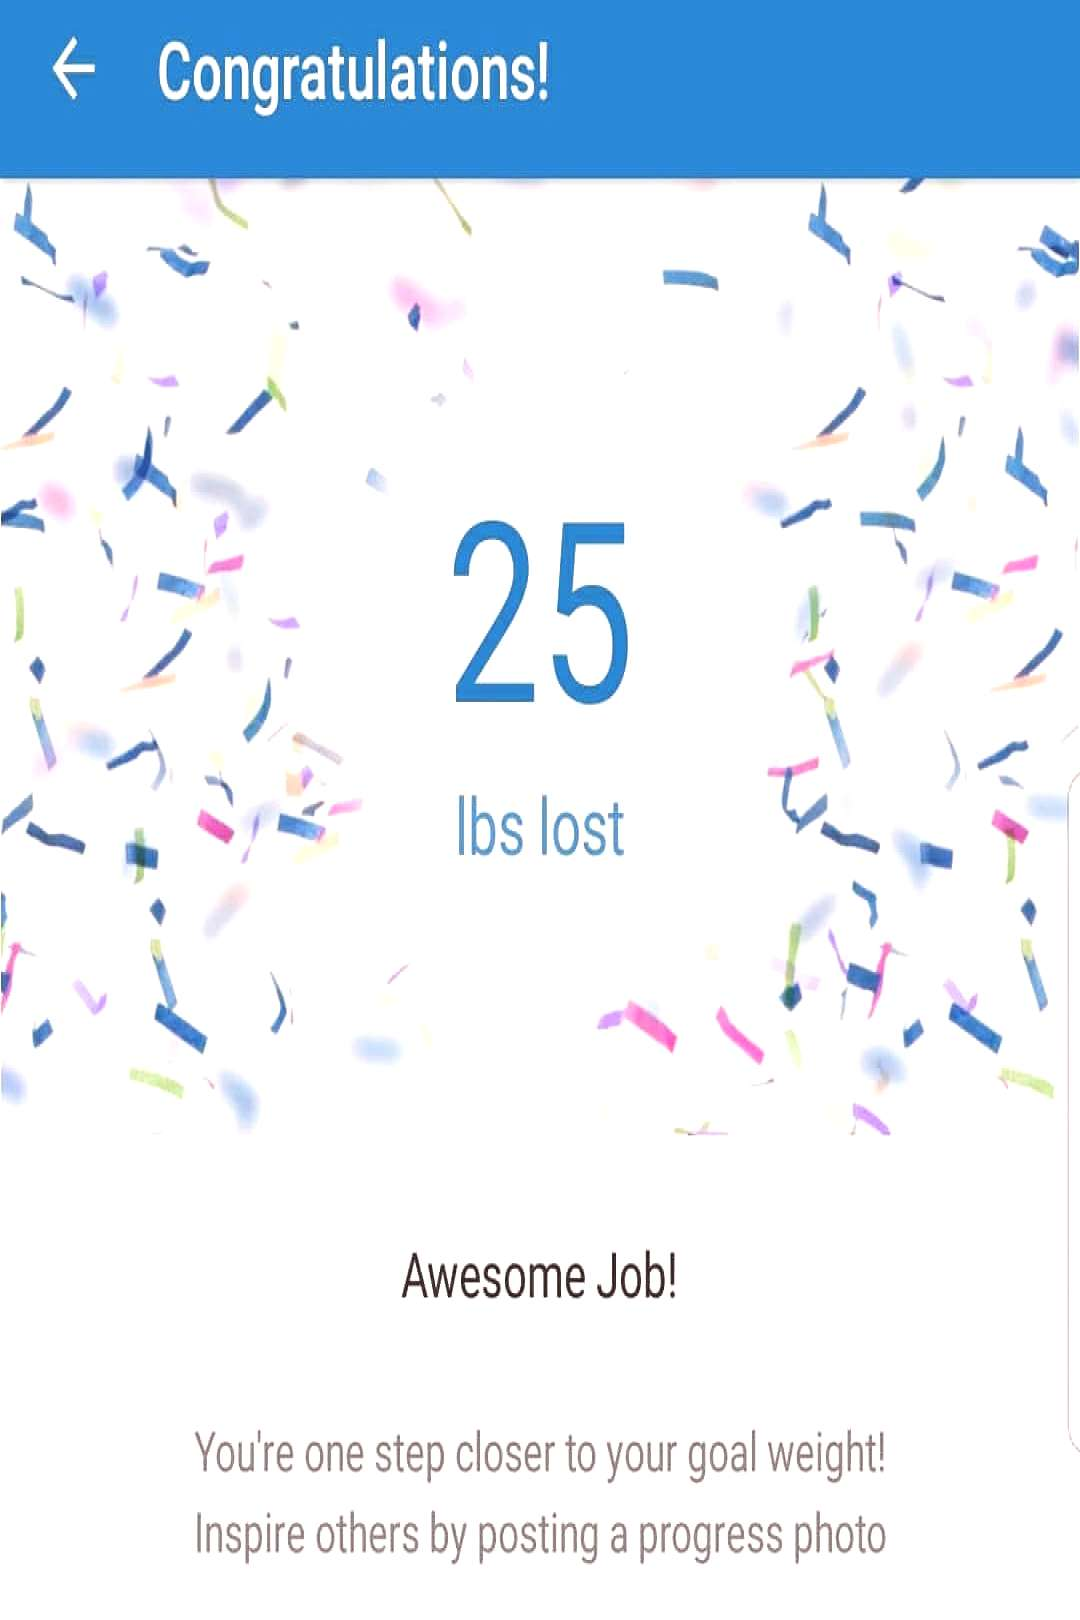 text that says 'Congratulations! 25 lbs lost A